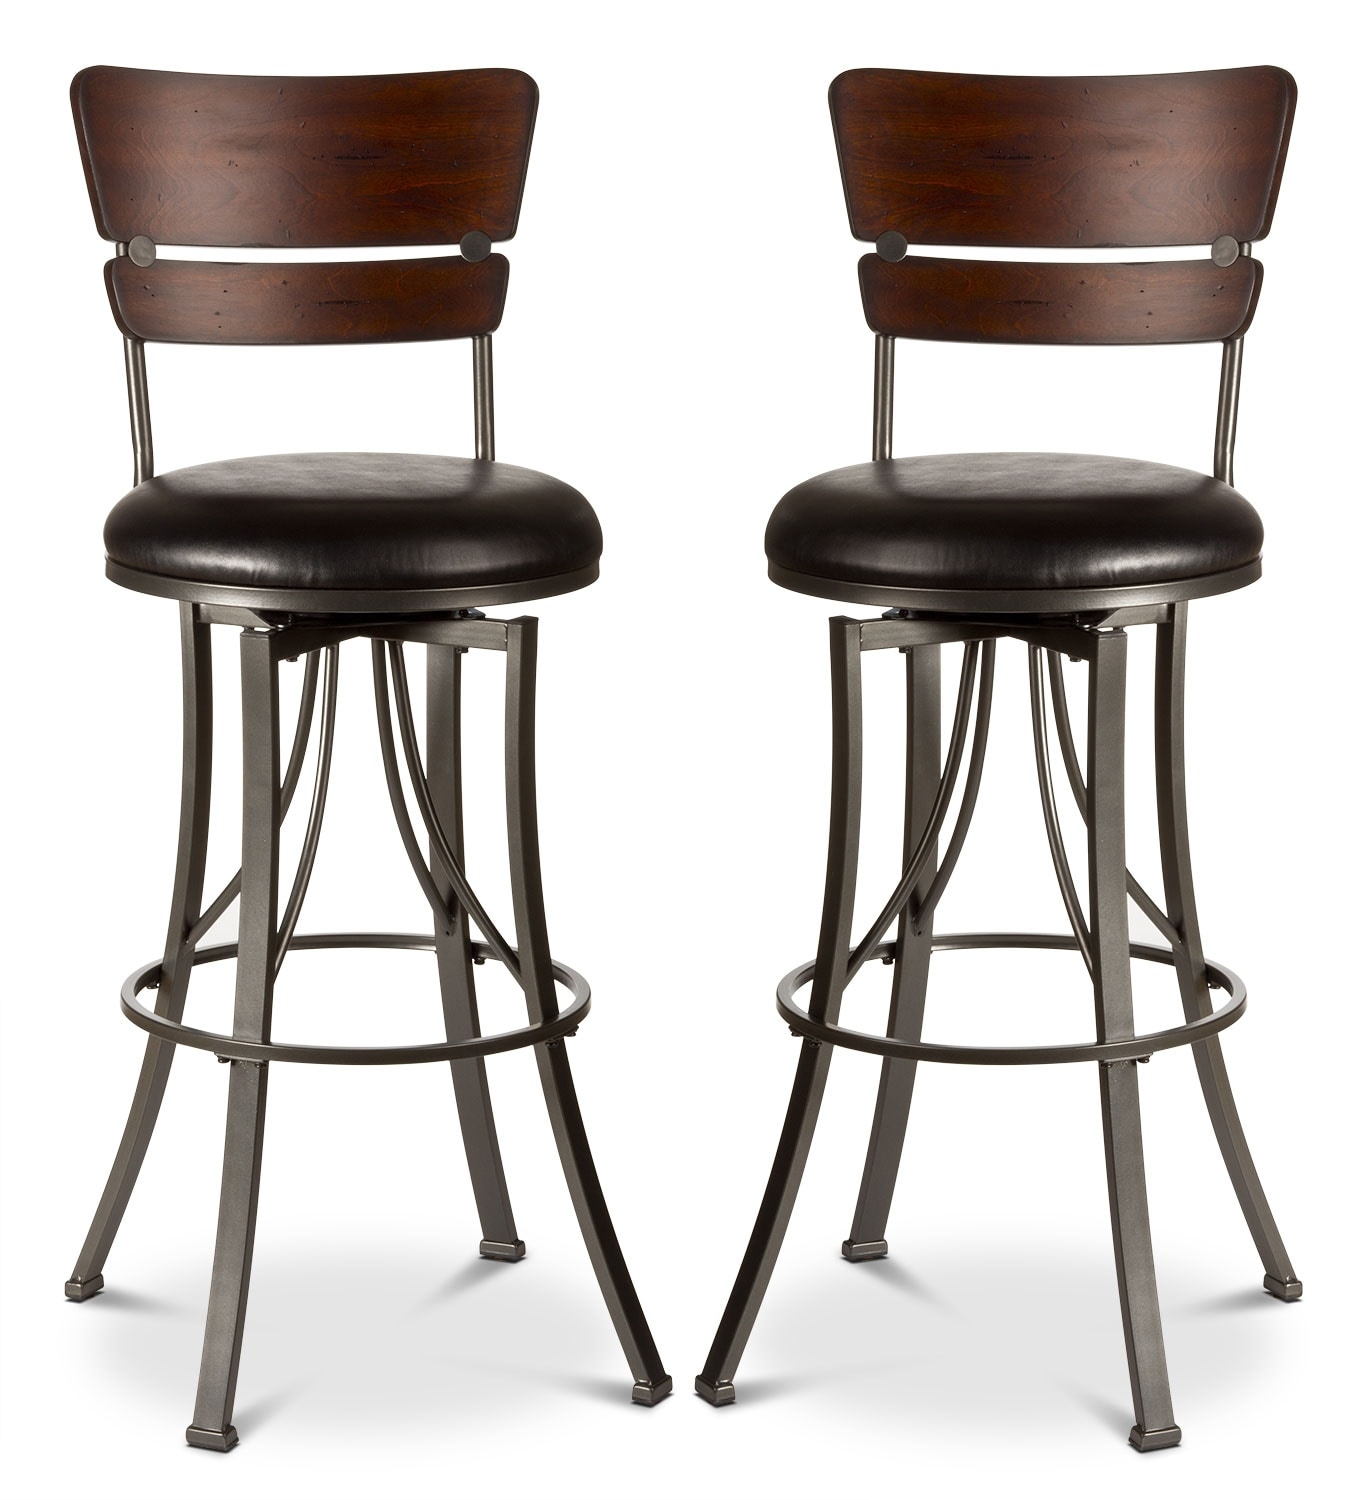 Santa Monica Counter Height Swivel Stool Set Of 2 The Brick